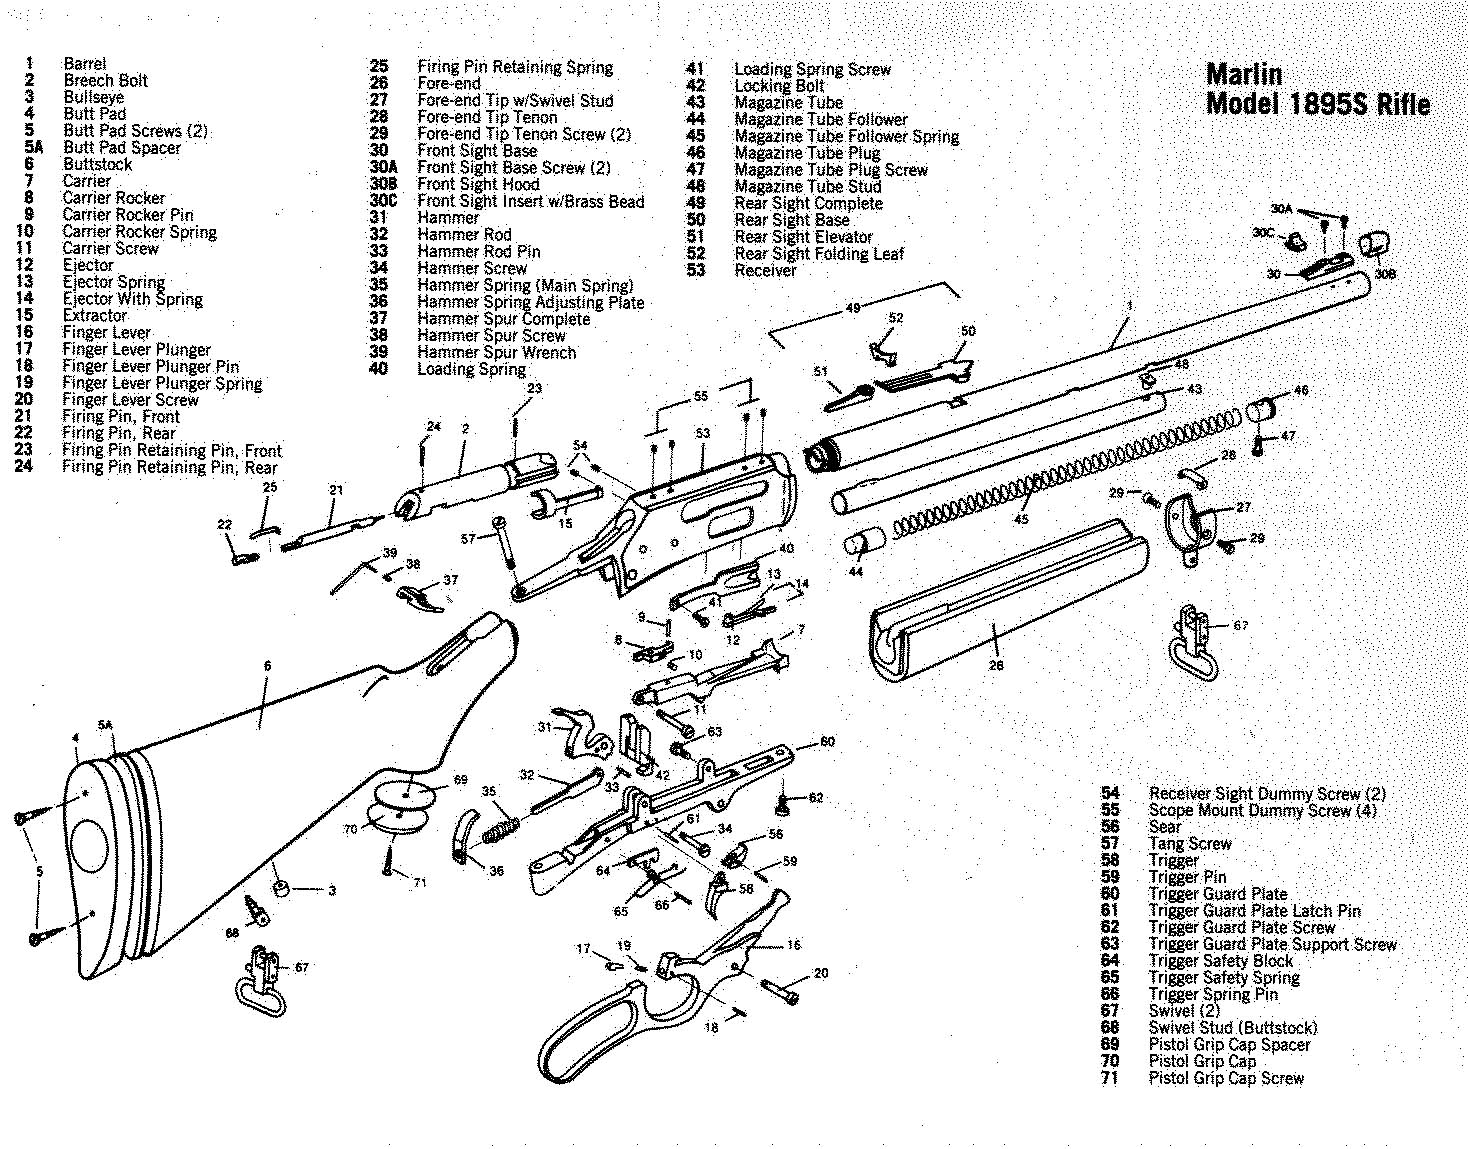 parts breakdown manual for model 29 savage pump action